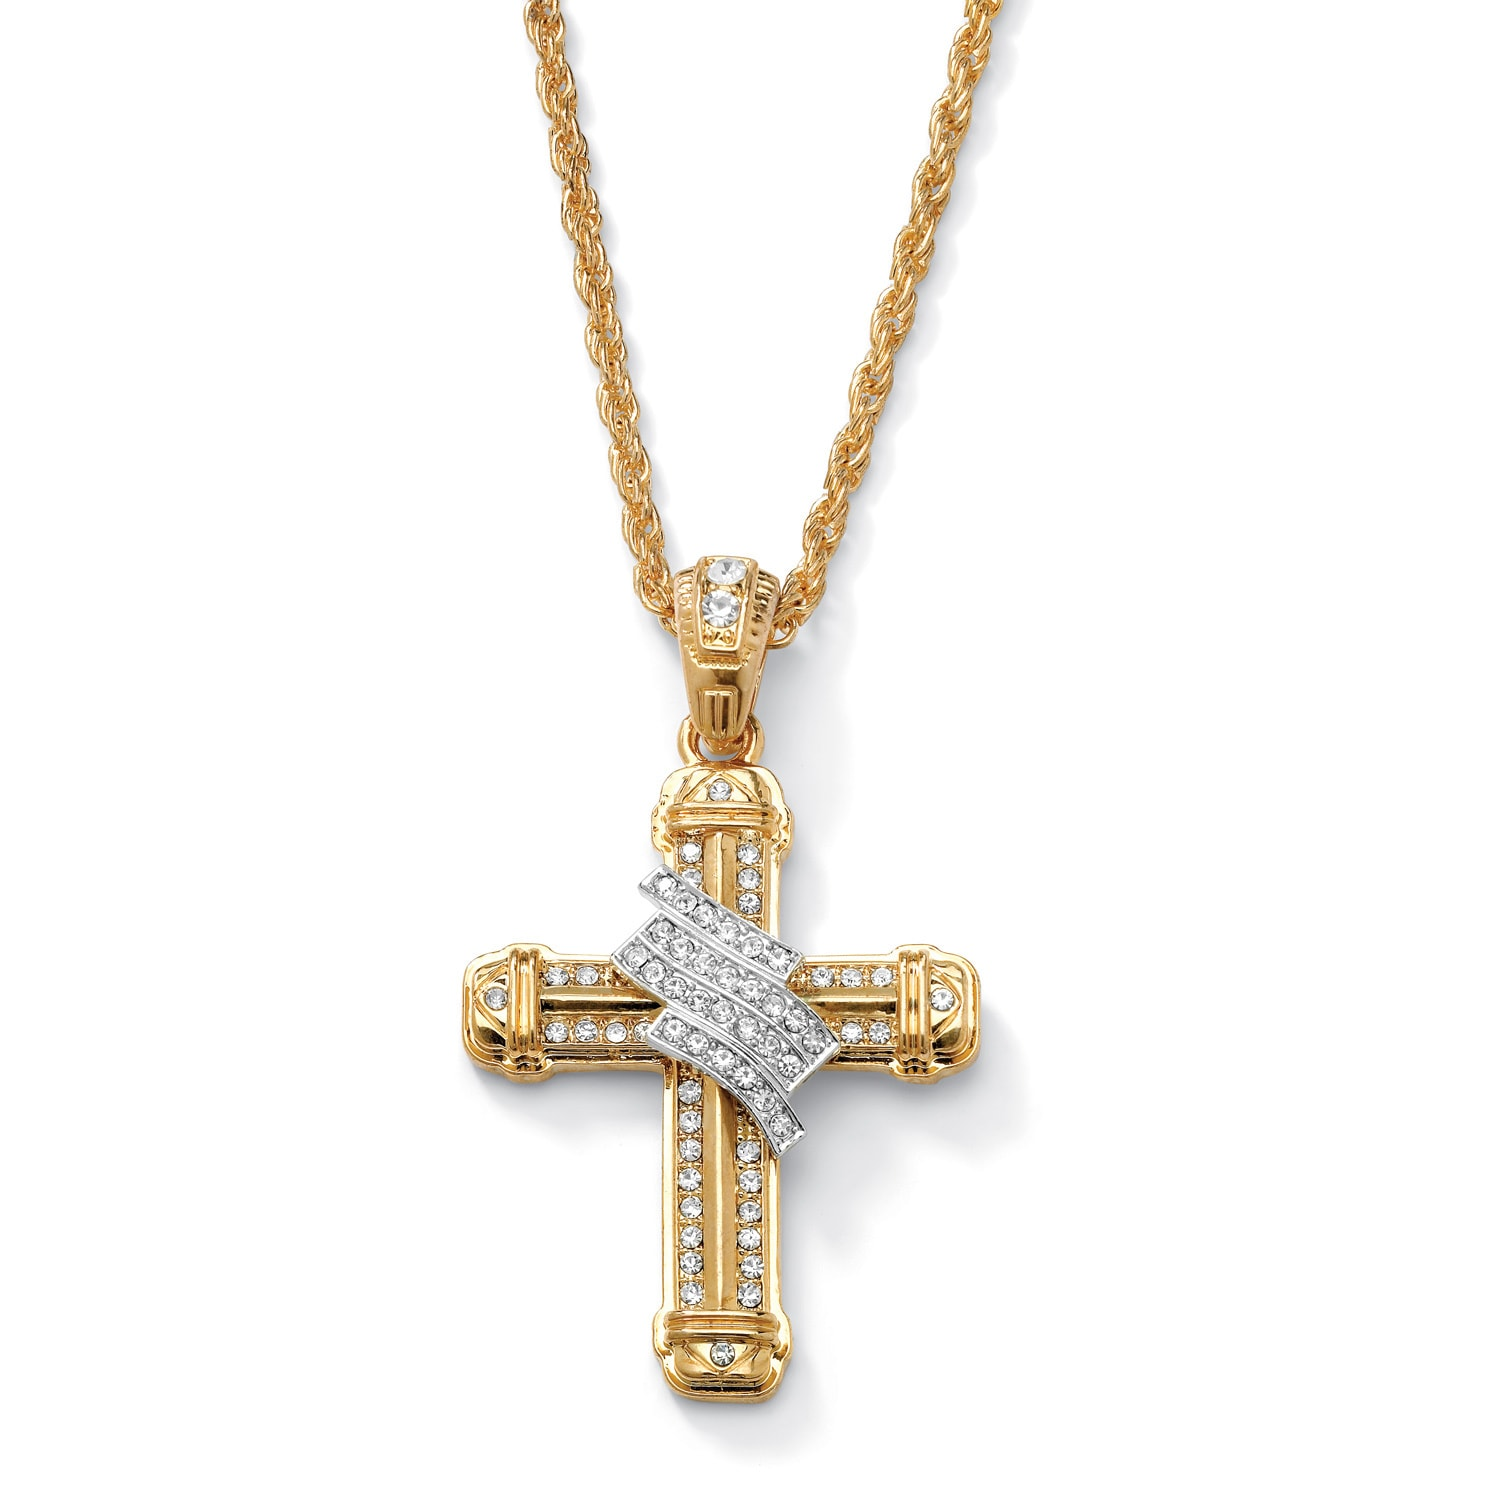 Mens crystal wrapped cross pendant and chain in yellow gold tone 24 mens crystal wrapped cross pendant and chain in yellow gold tone 24 free shipping on orders over 45 overstock 14837780 aloadofball Gallery